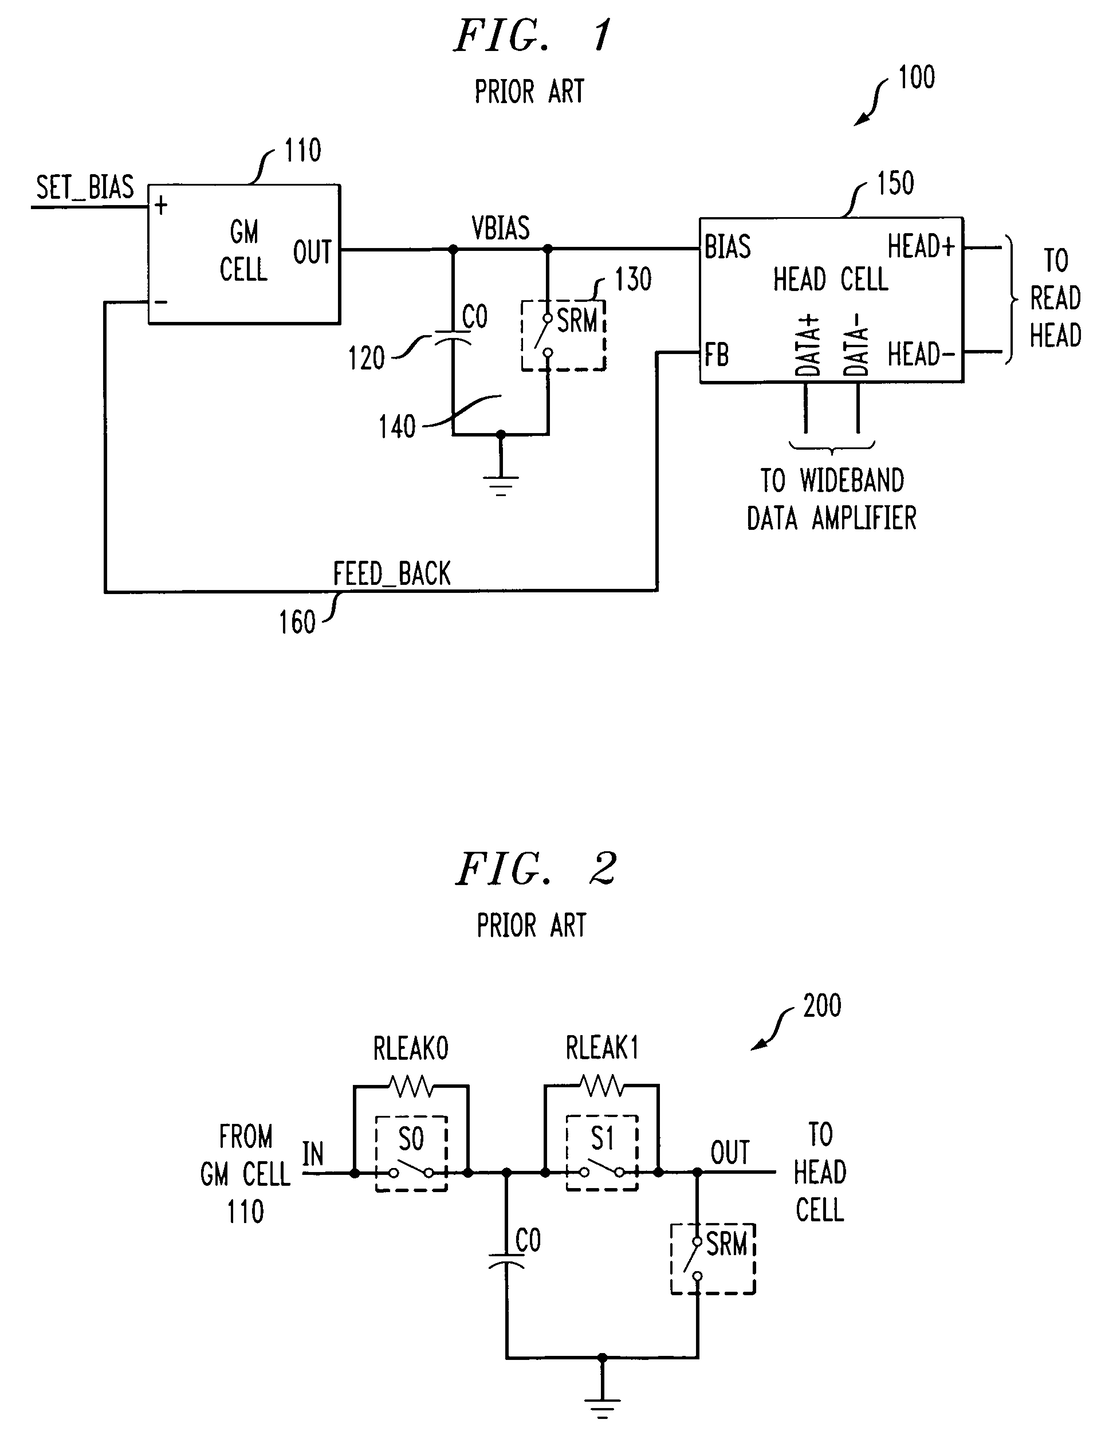 Electric Circuit Drawing At Free For Personal Use Cyclic Relay Wiring Diagram 1100x1447 Patent Us7333039 Dual Mode Sample And Hold